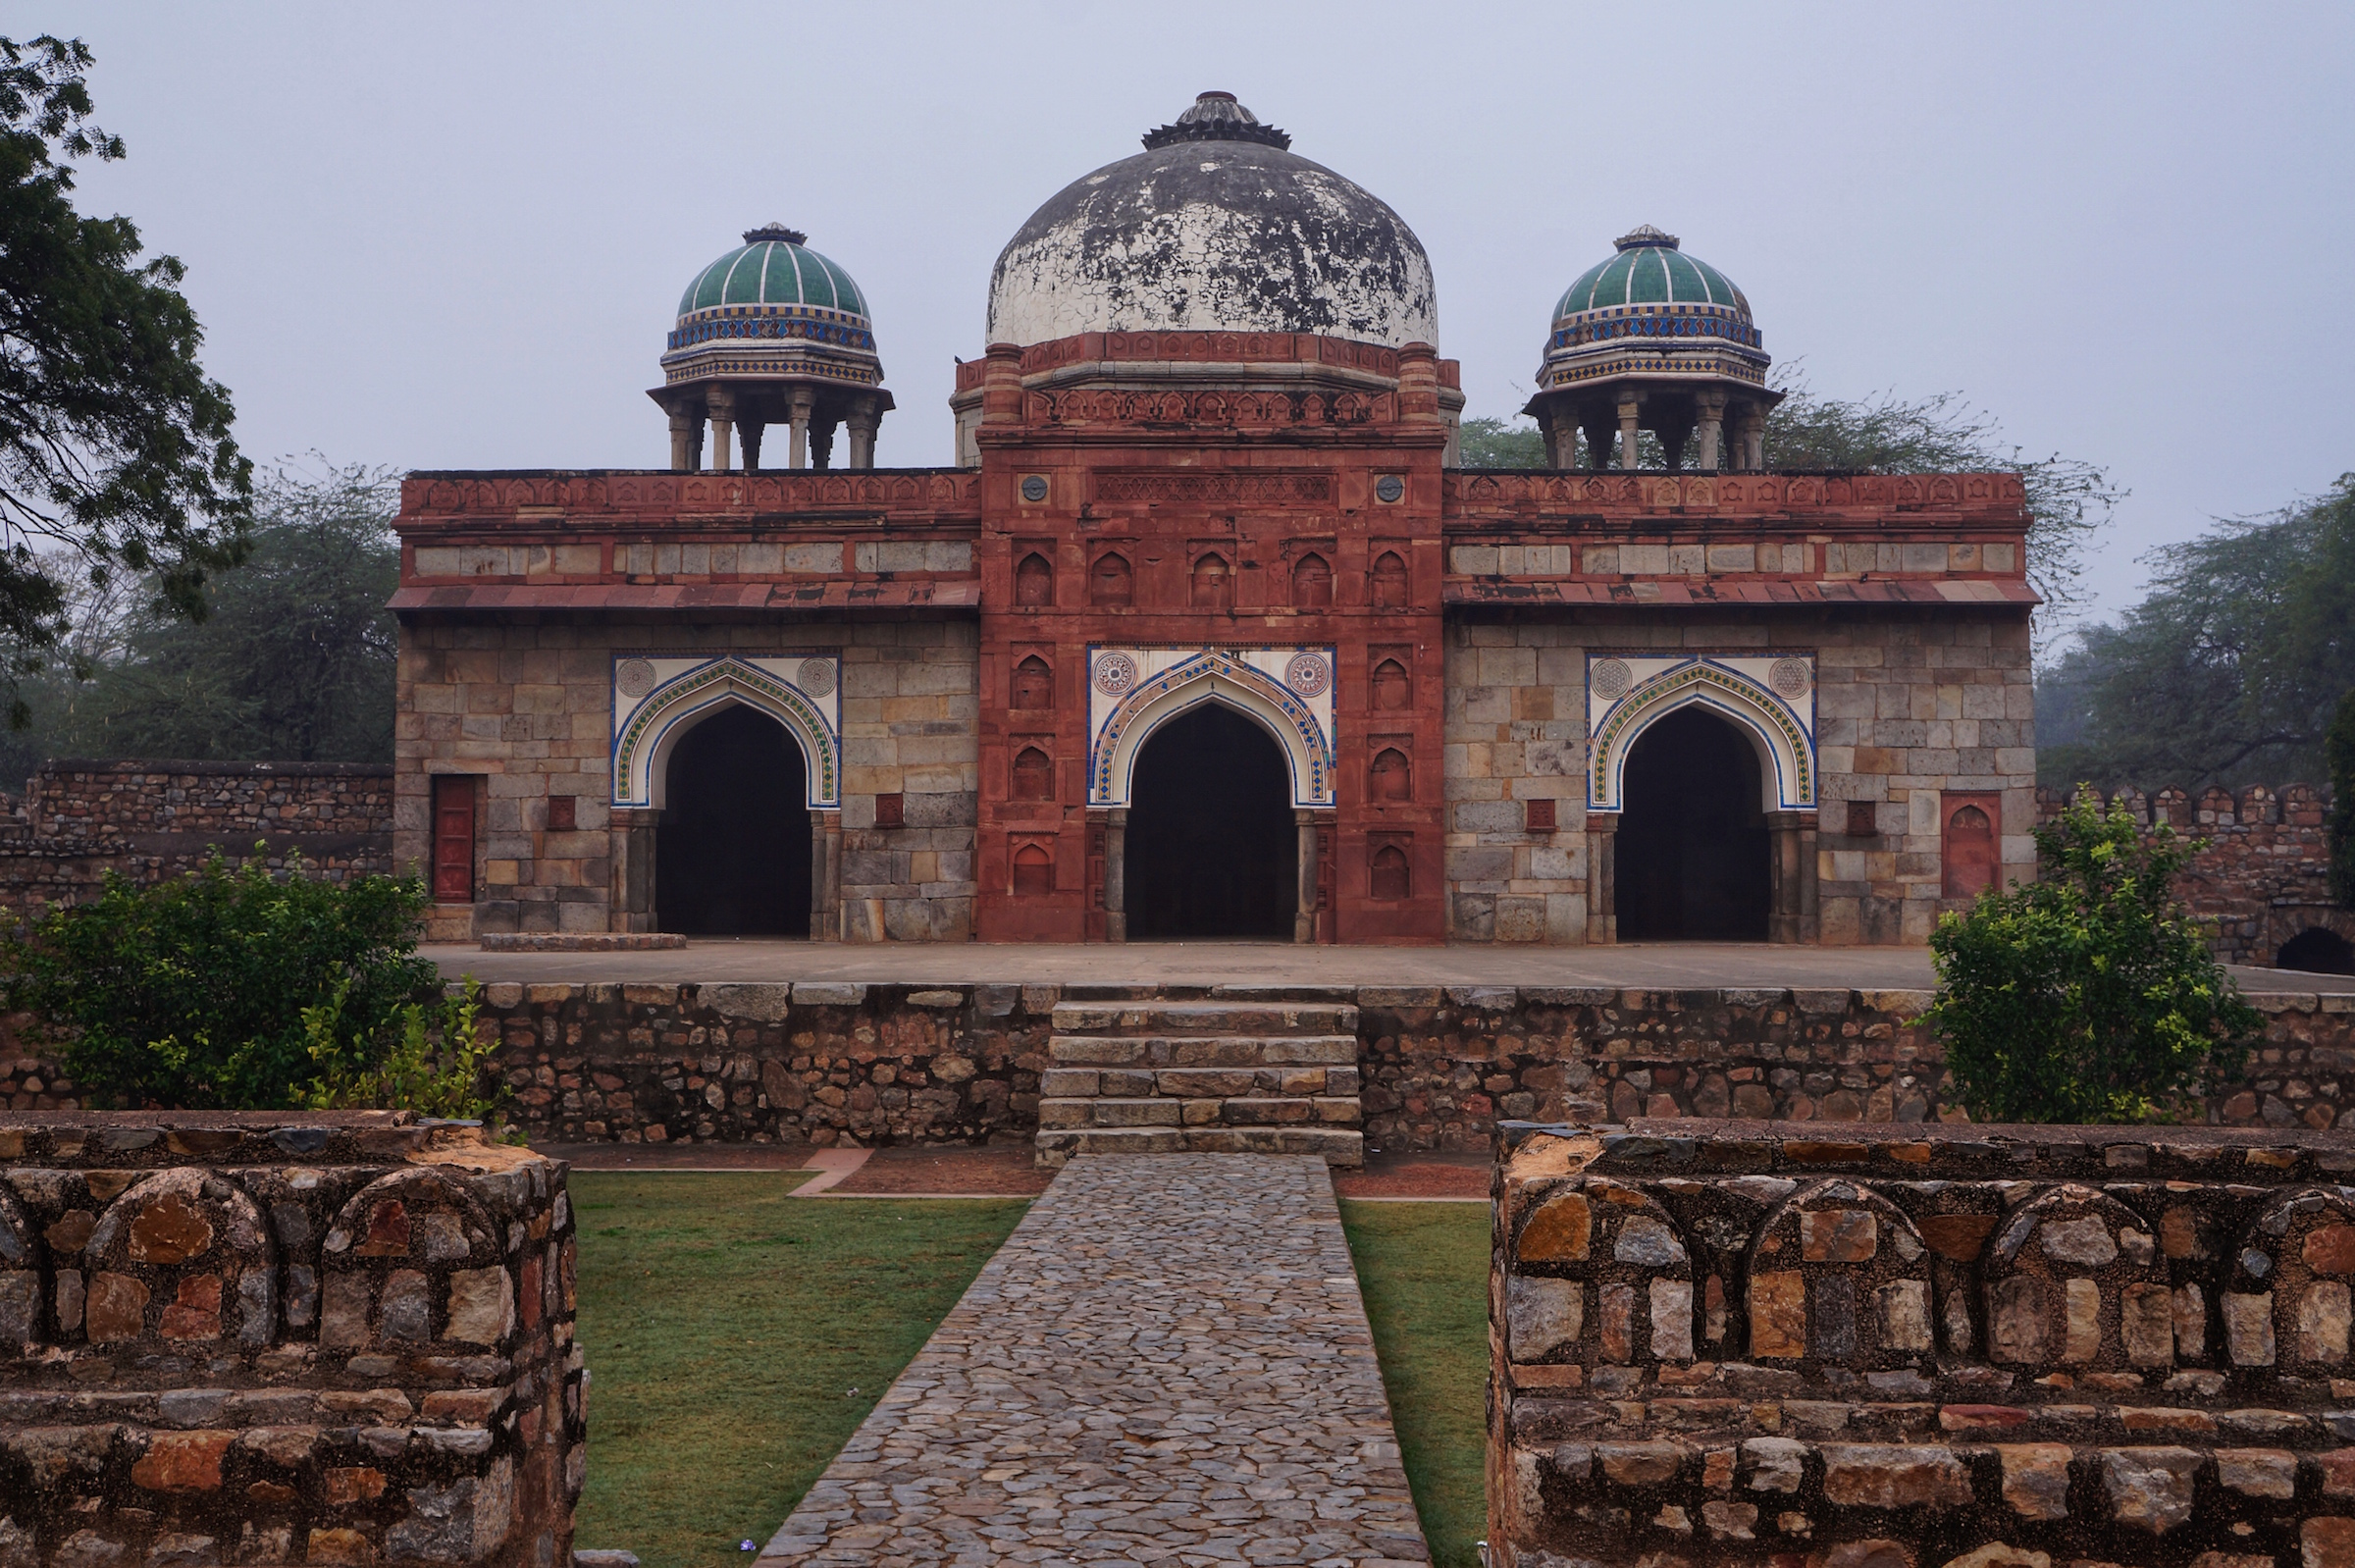 One of several structures comprising the UNESCO World Heritage Site of Humayun's Tomb in Delhi, India.